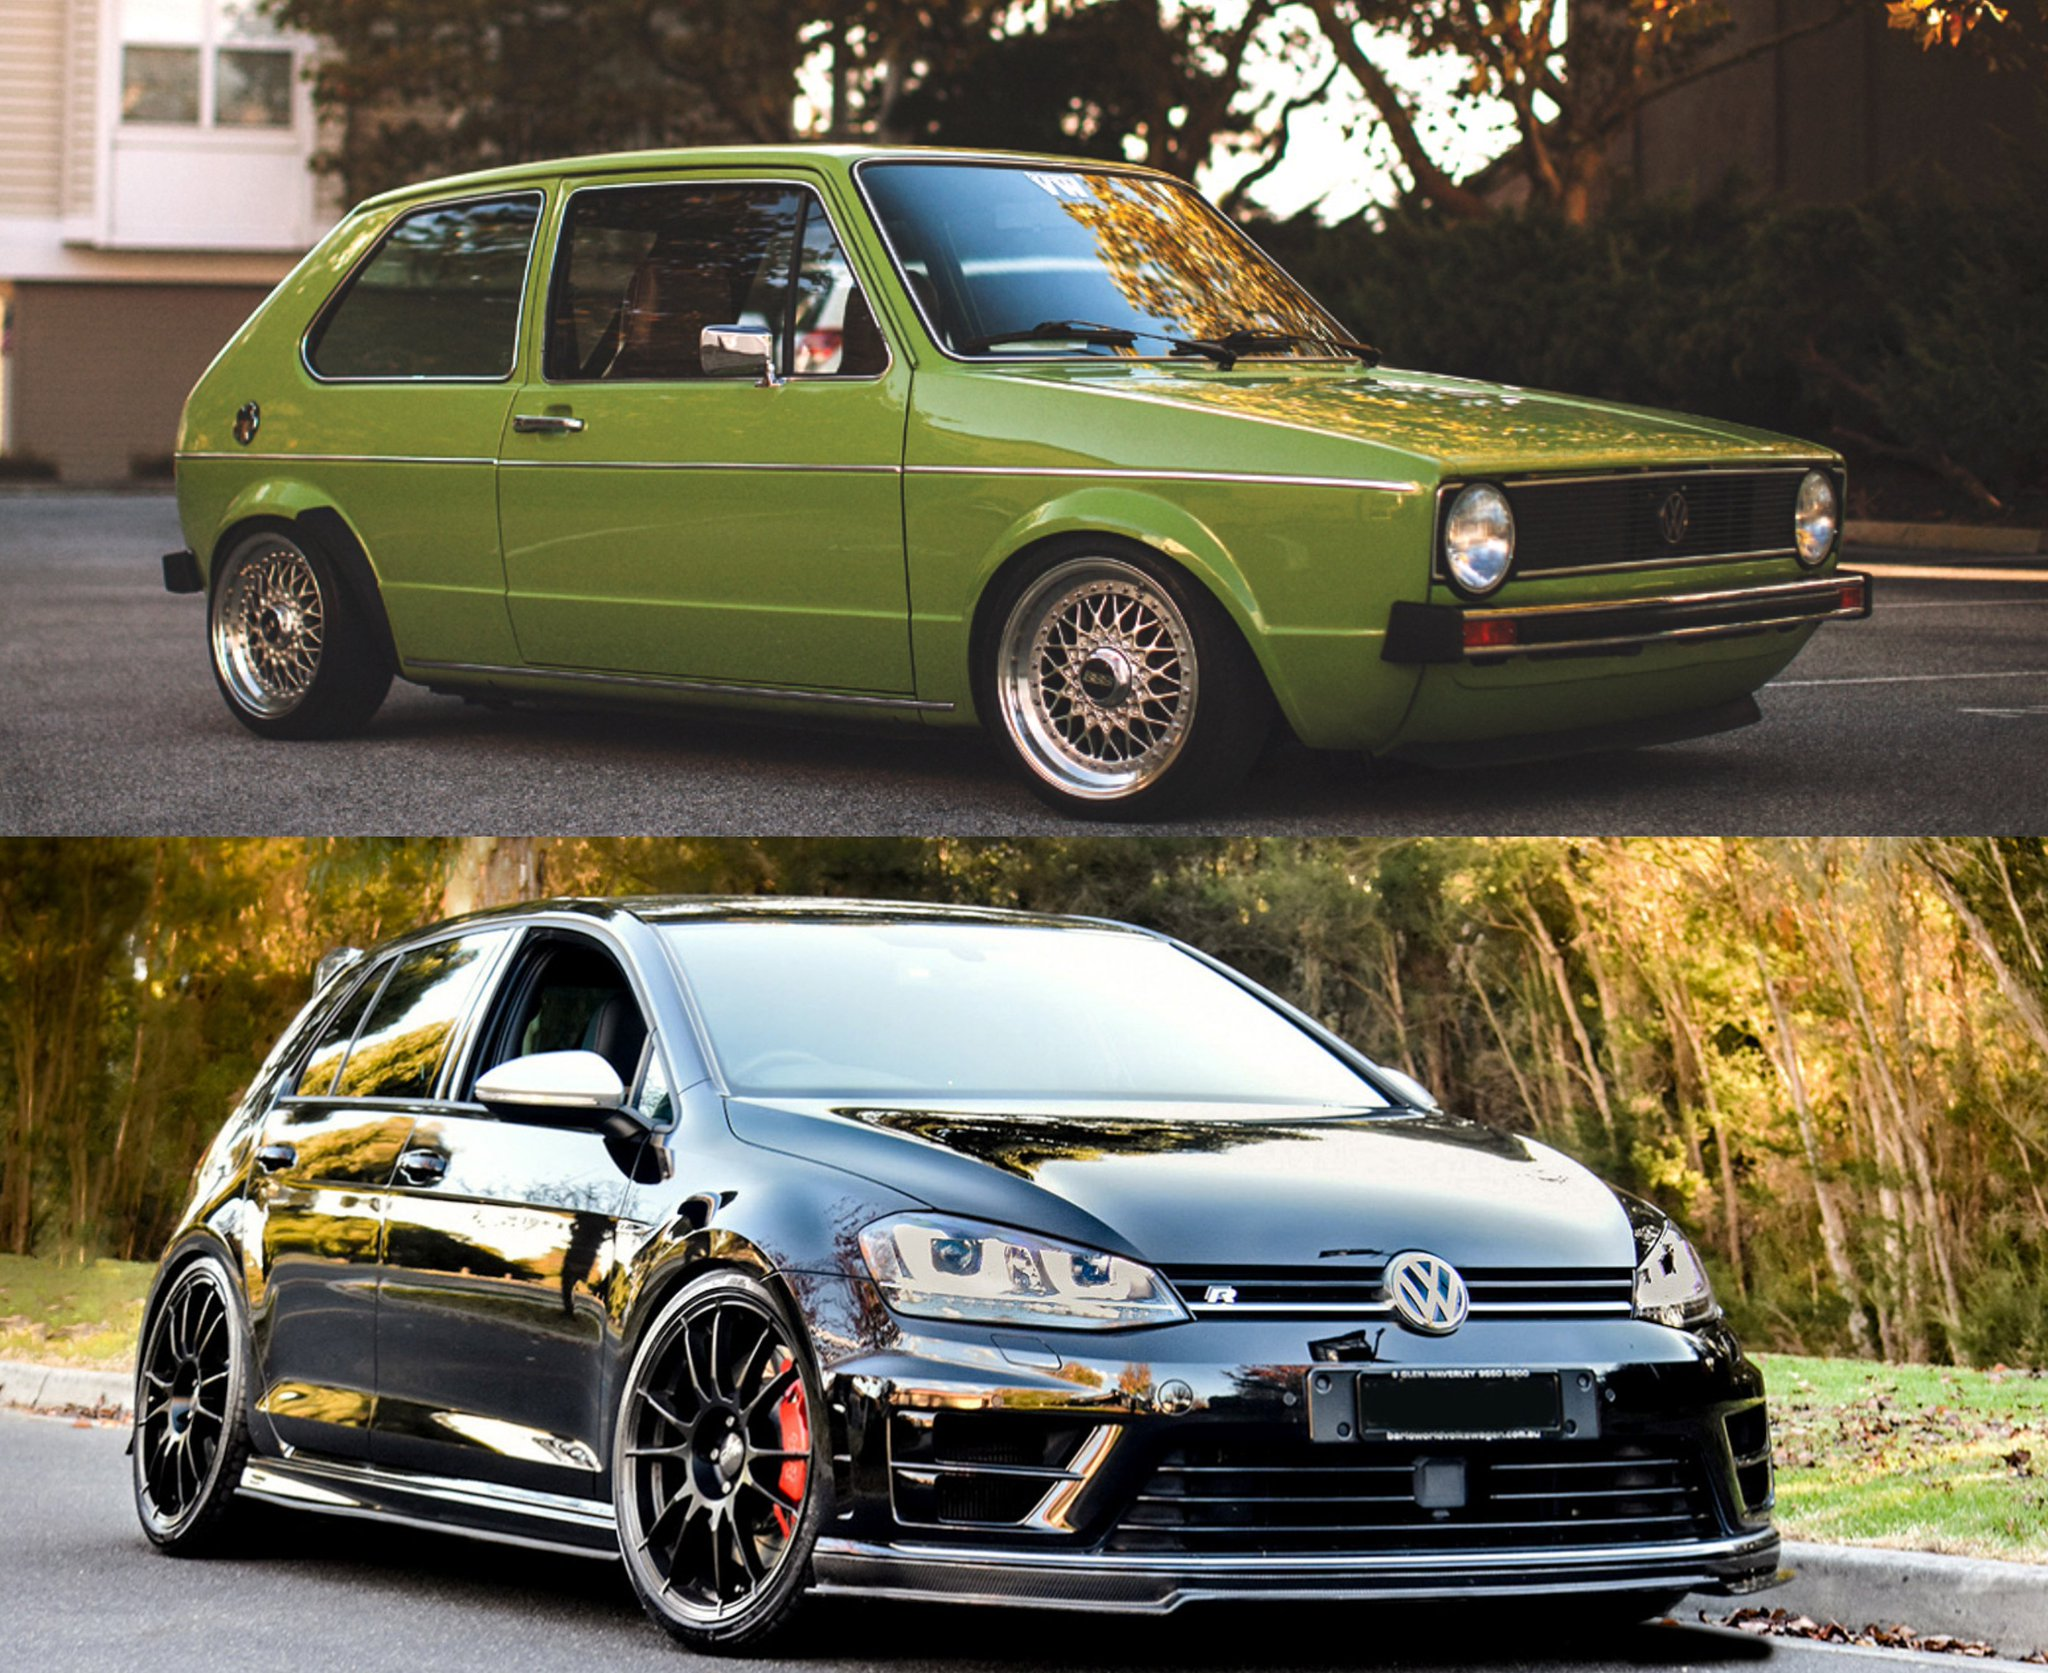 vw cool springs on twitter how does the throwback golf model compare to the modern one well to start they both have charming good looks and unforgettable style would you have driven twitter